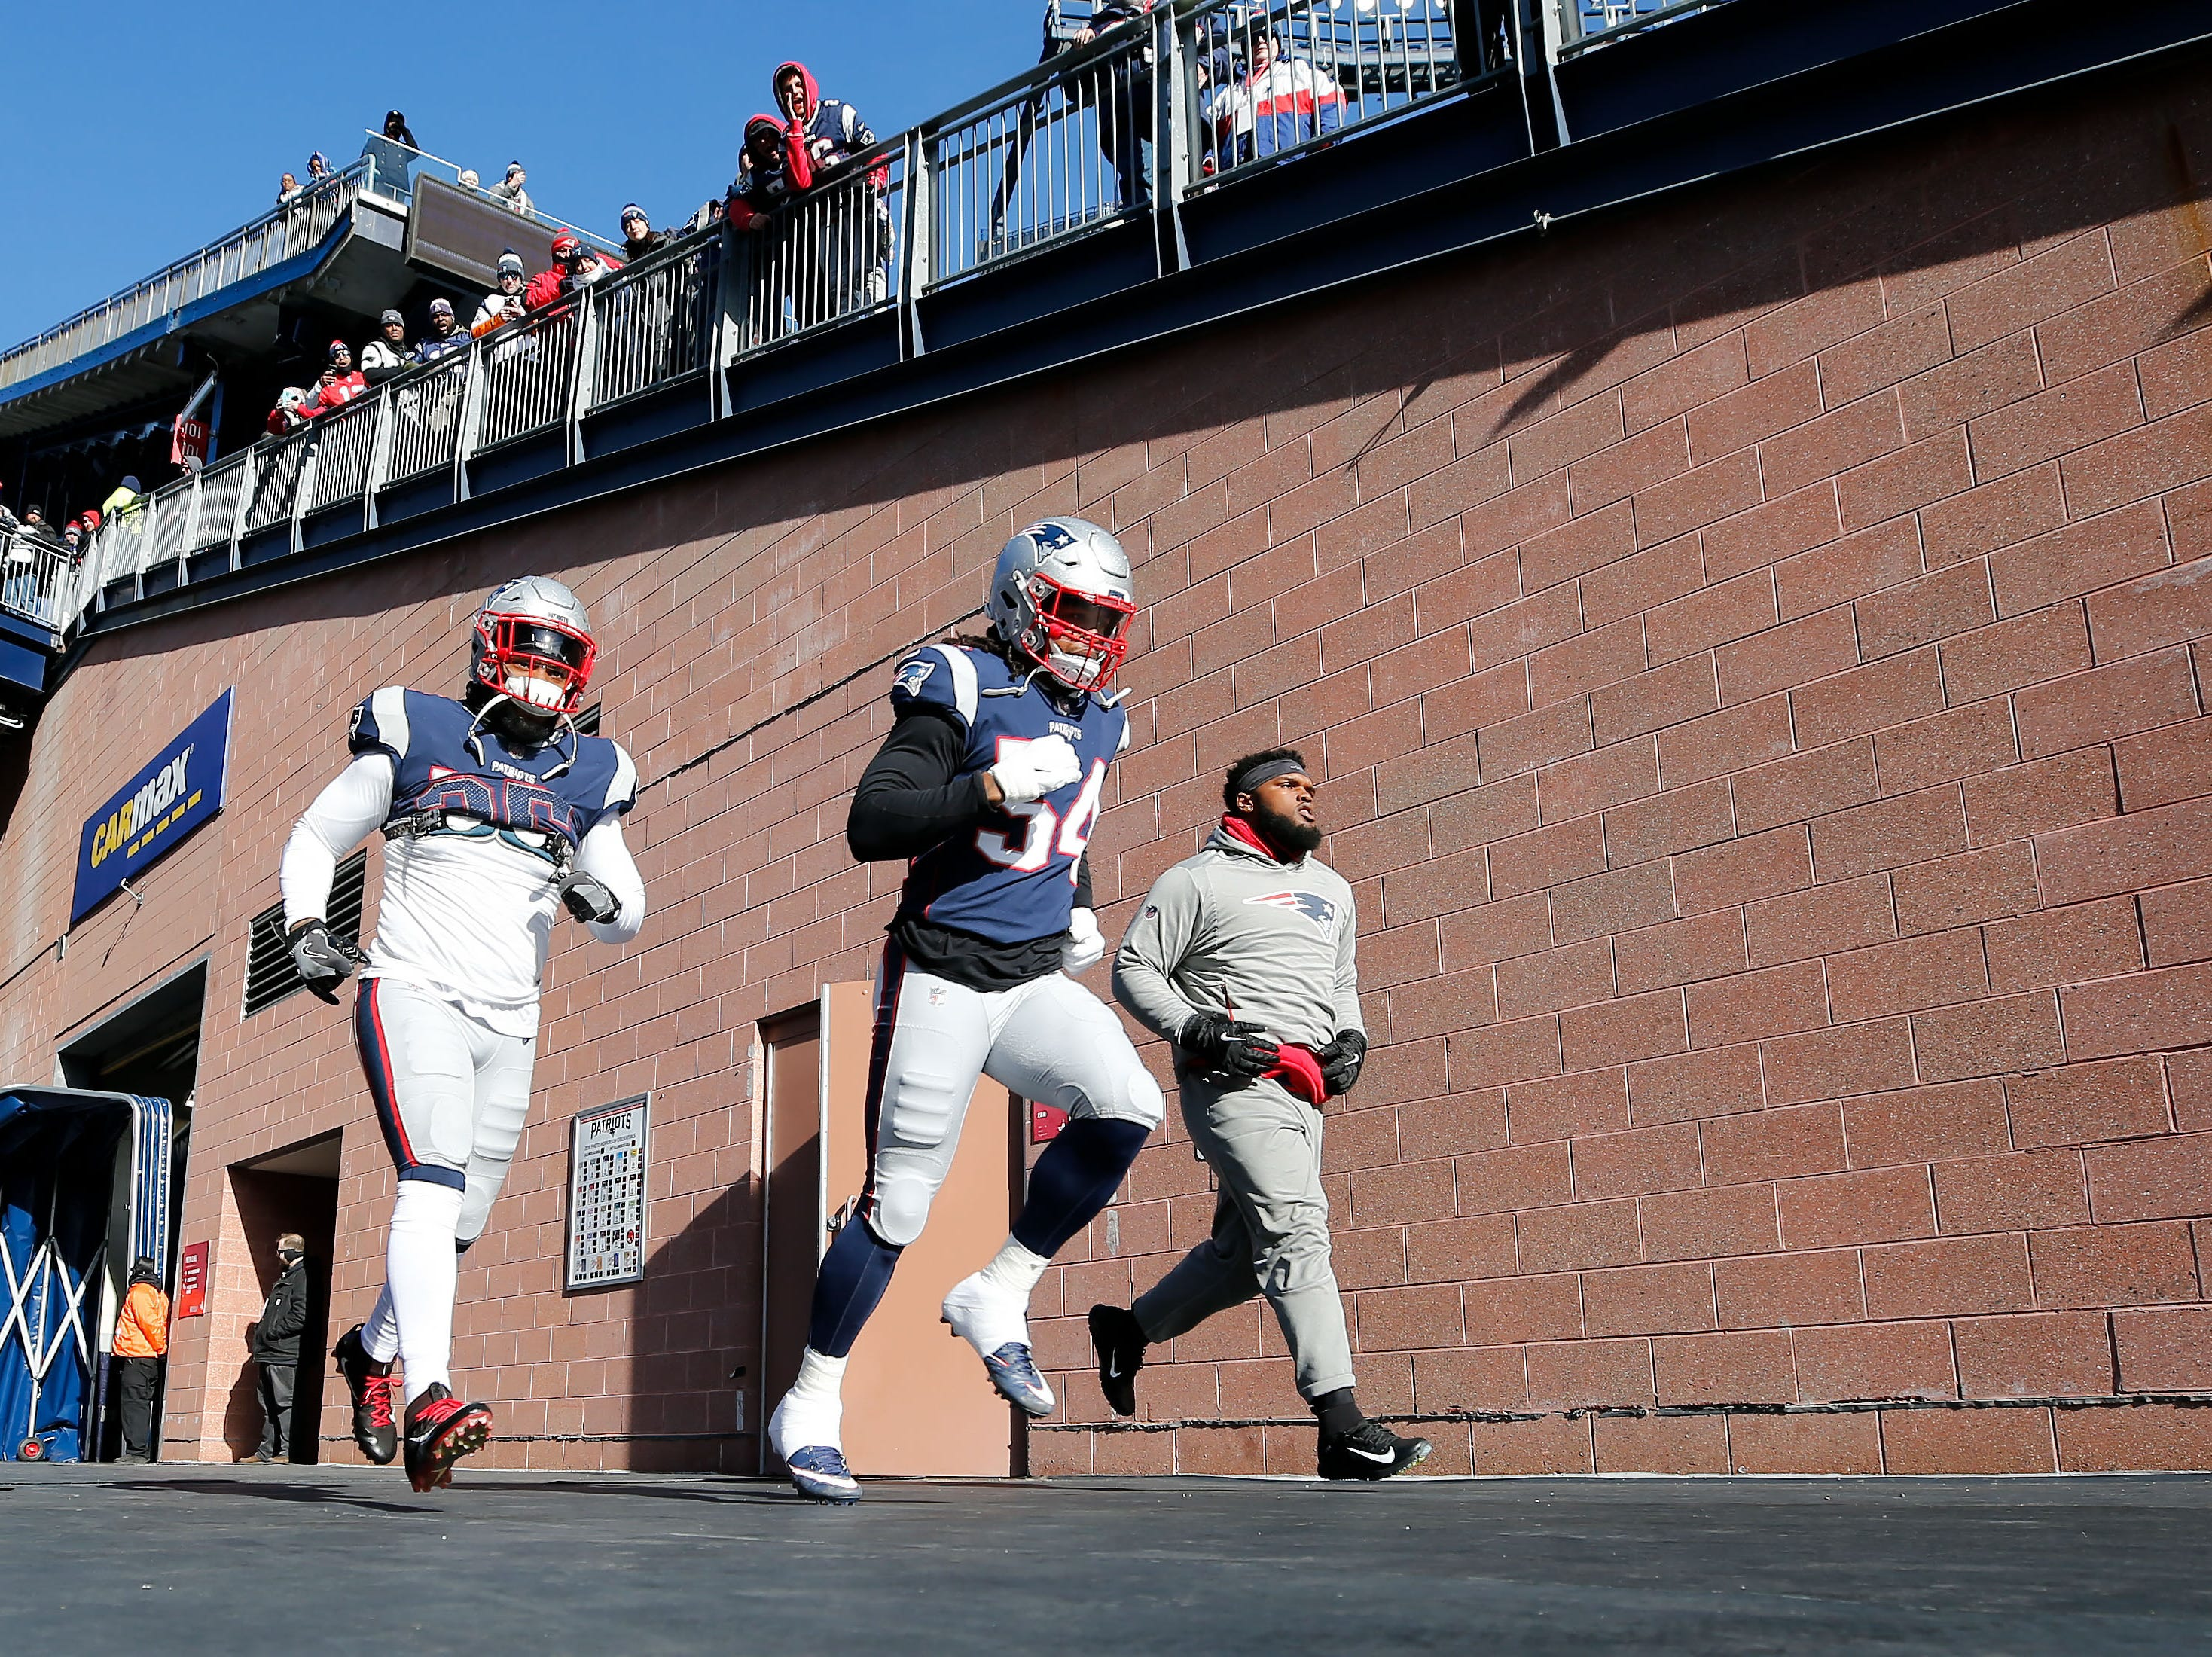 Jan 13, 2019; Foxborough, MA, USA; New England Patriots outside linebacker Dont'a Hightower (54) and defensive back Keion Crossen (35) walk onto the field for warmups before a game against the Los Angeles Chargersin an AFC Divisional playoff football game at Gillette Stadium. Mandatory Credit: Winslow Townson-USA TODAY Sports